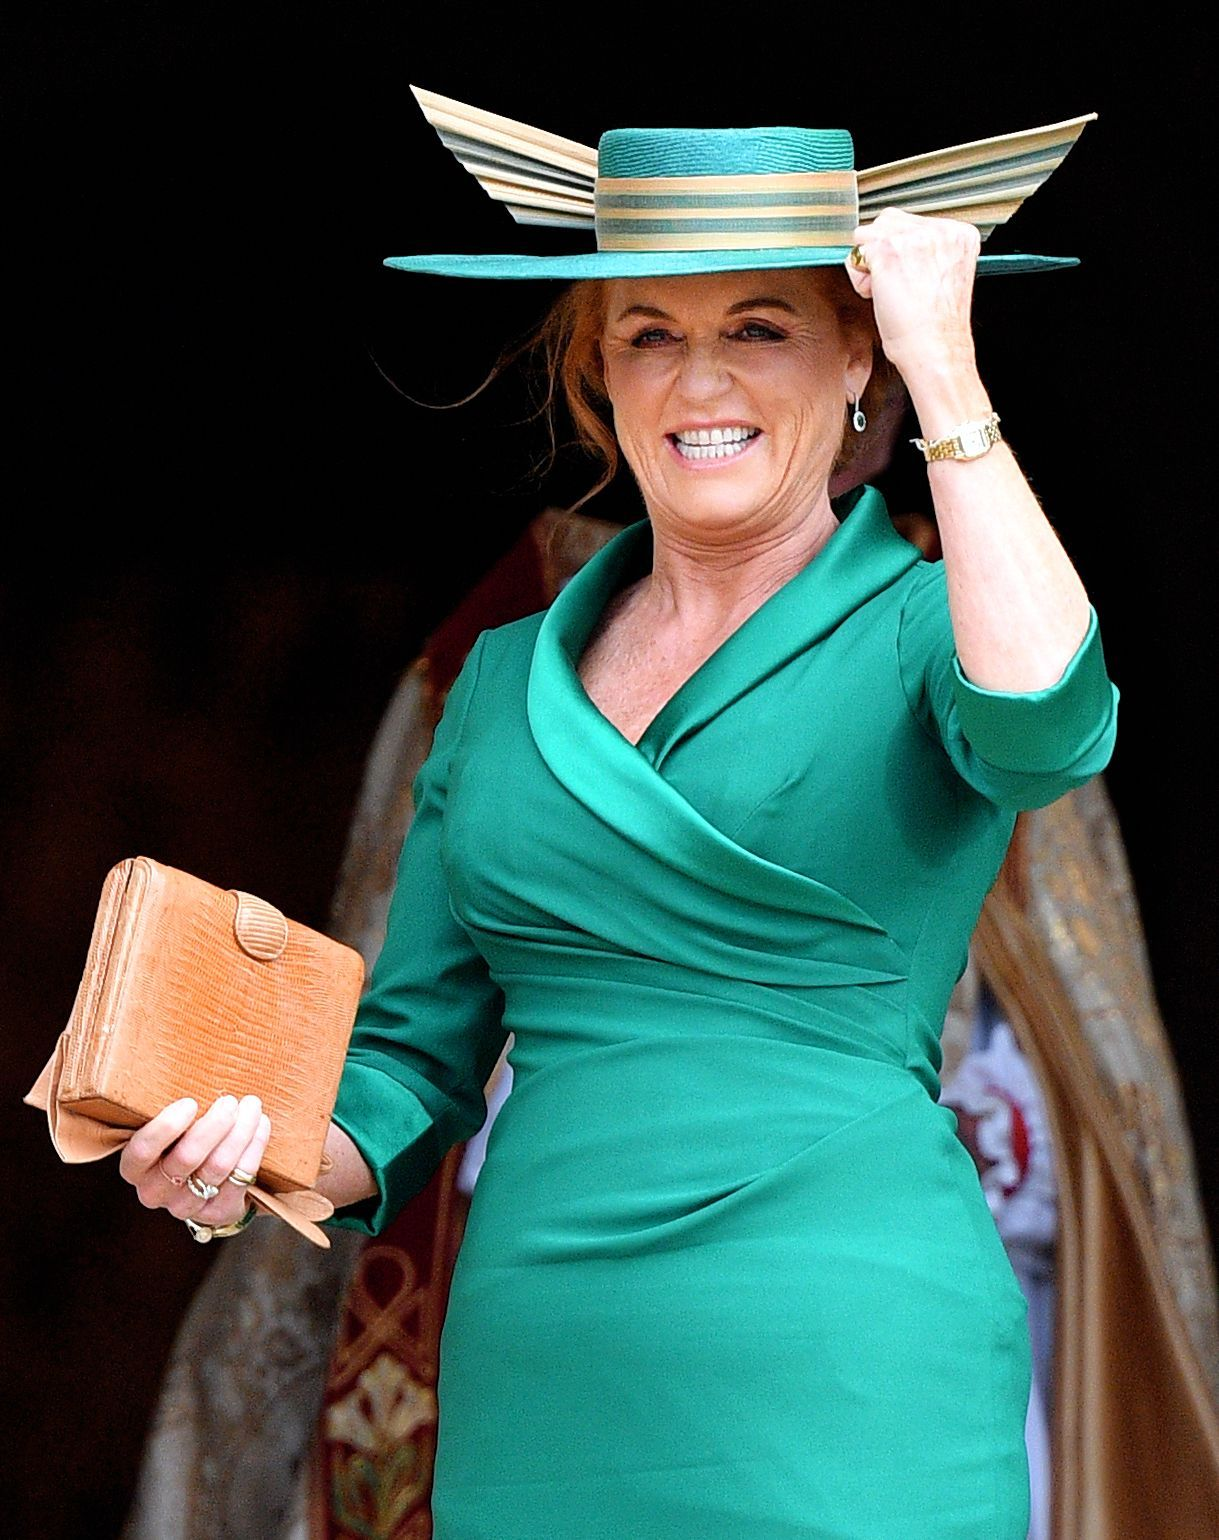 No One Noticed Sarah Ferguson's Touching Tribute to